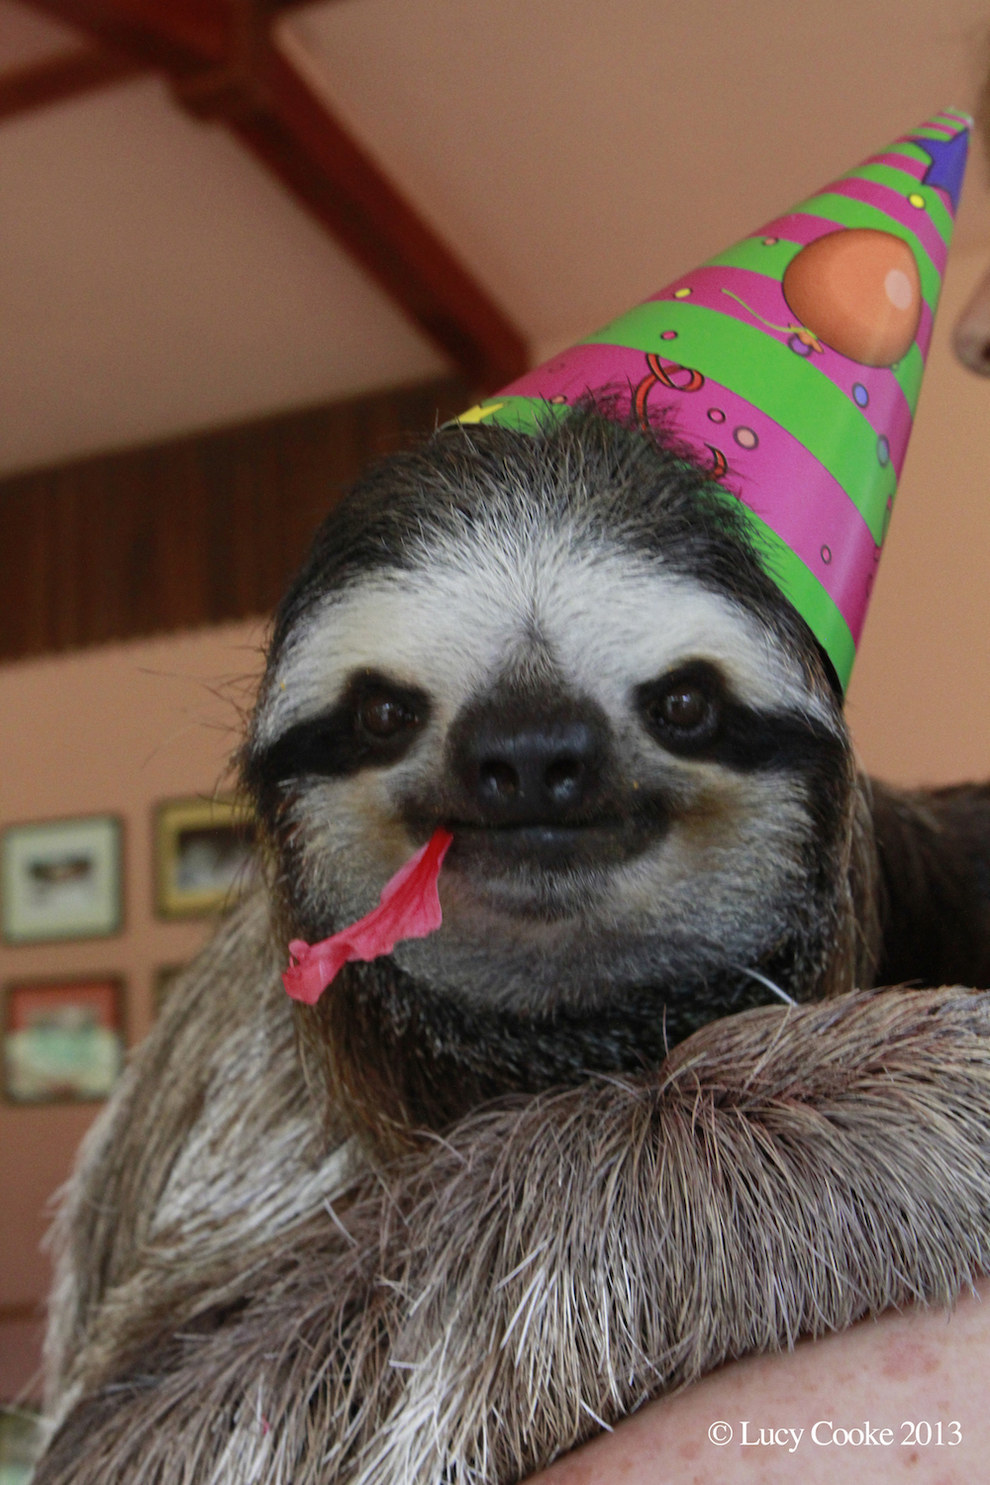 3. Lucy wants us all to celebrate sloths.